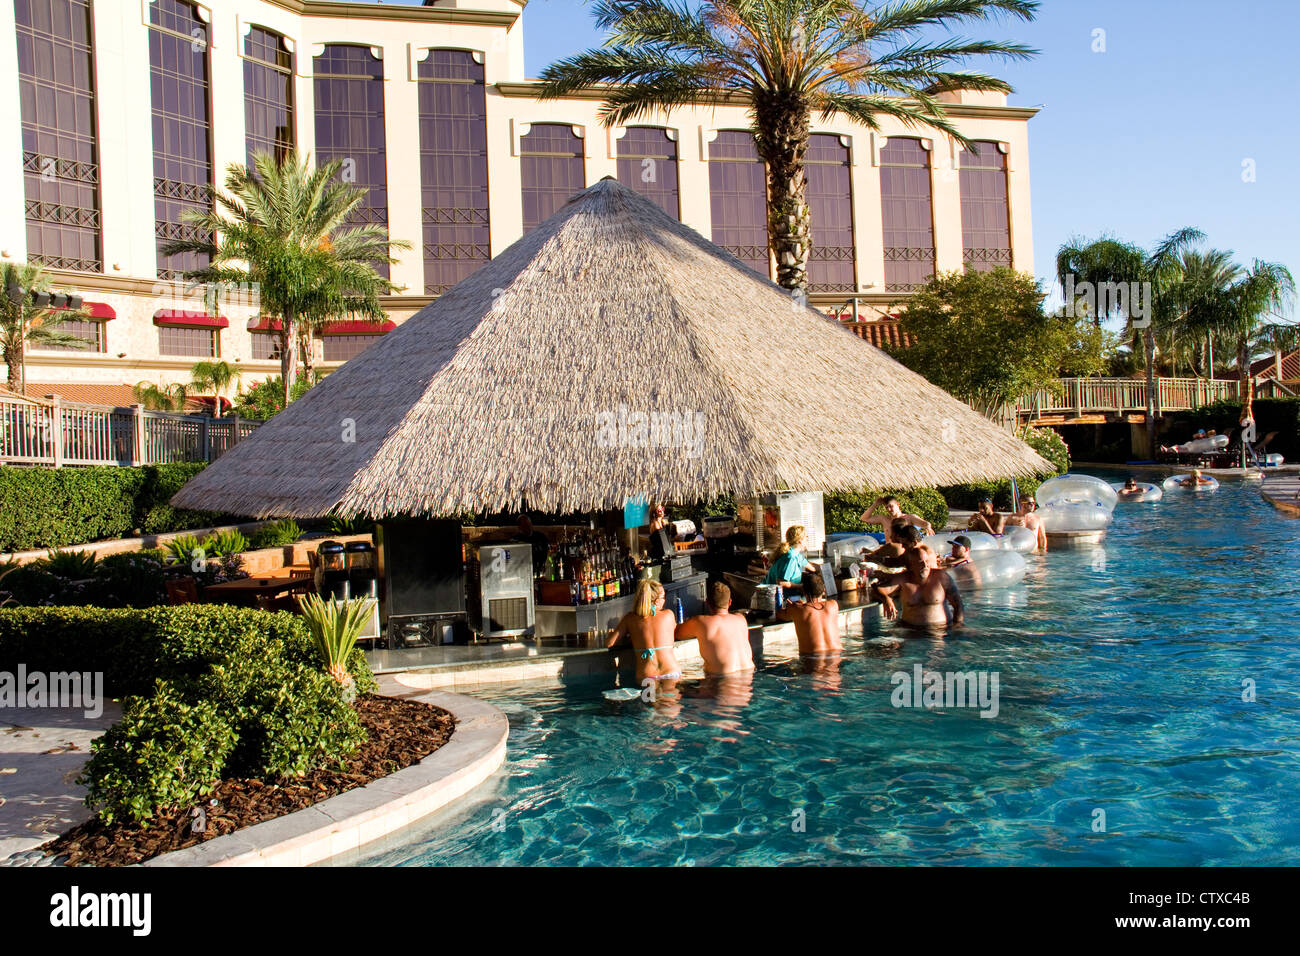 Casino amp ResortLAuberge Casino ResortLake Charles Louisiana